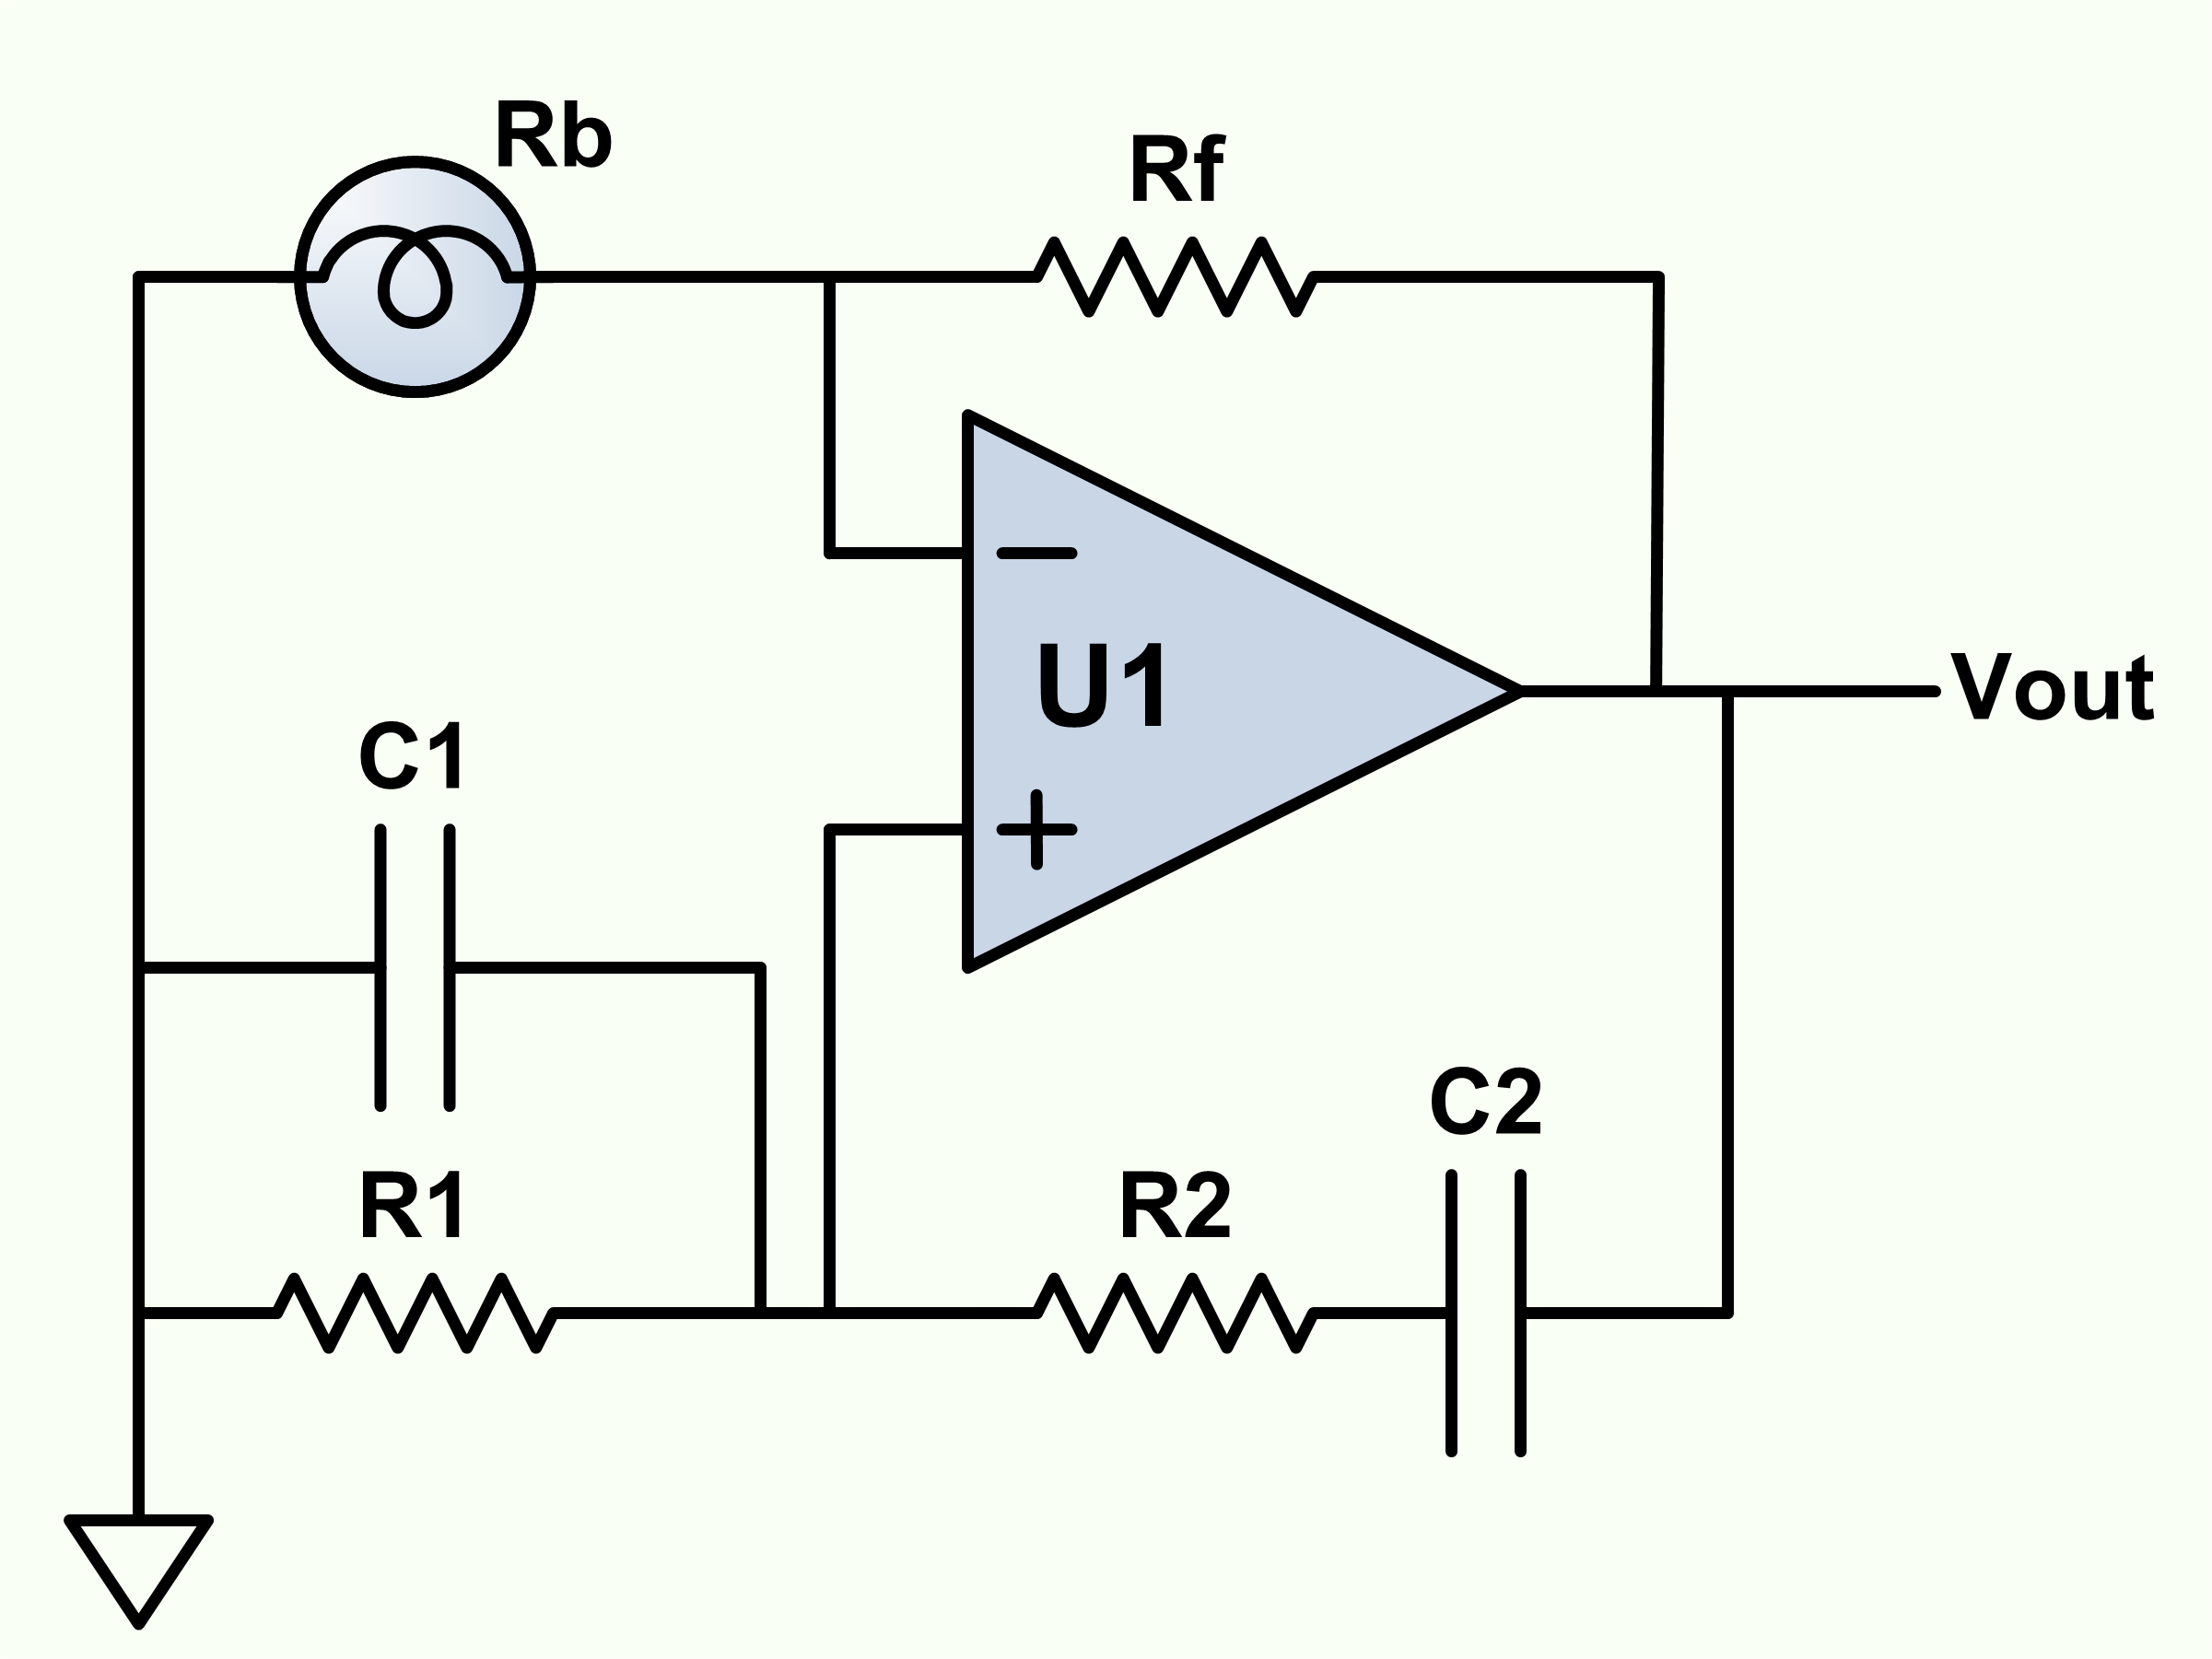 Weinbridgeoscillator Circuit Is A Type Of Electronic Oscillator Basic Oscillatory Circuits And Diagram That Generates Sine Waves It Can Generate Large Range Frequencies